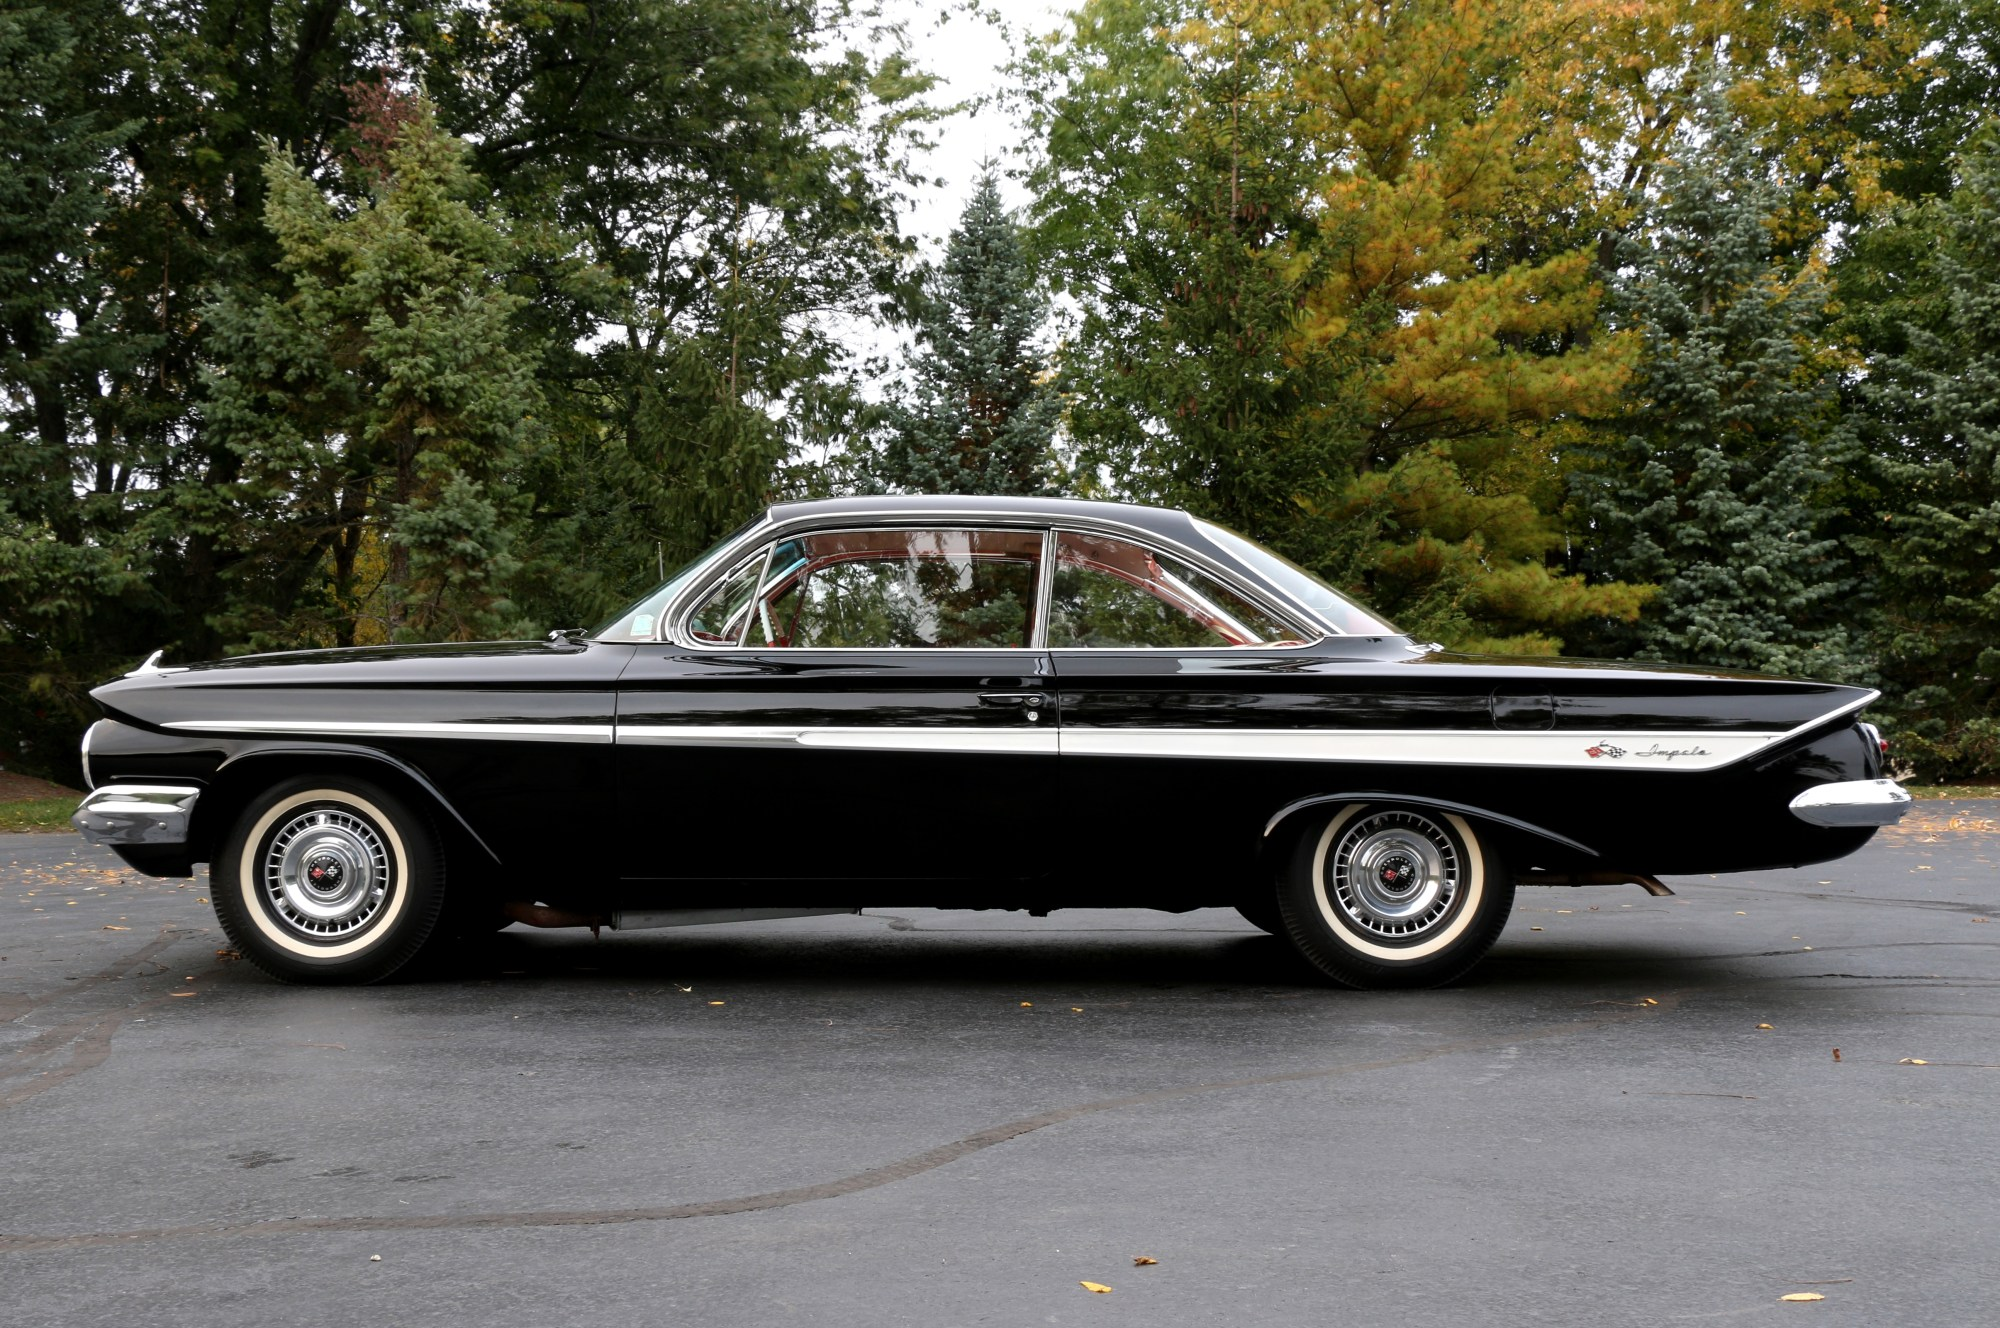 hight resolution of this view of david steinberg s original unrestored impala shows off the styling improvements made to the